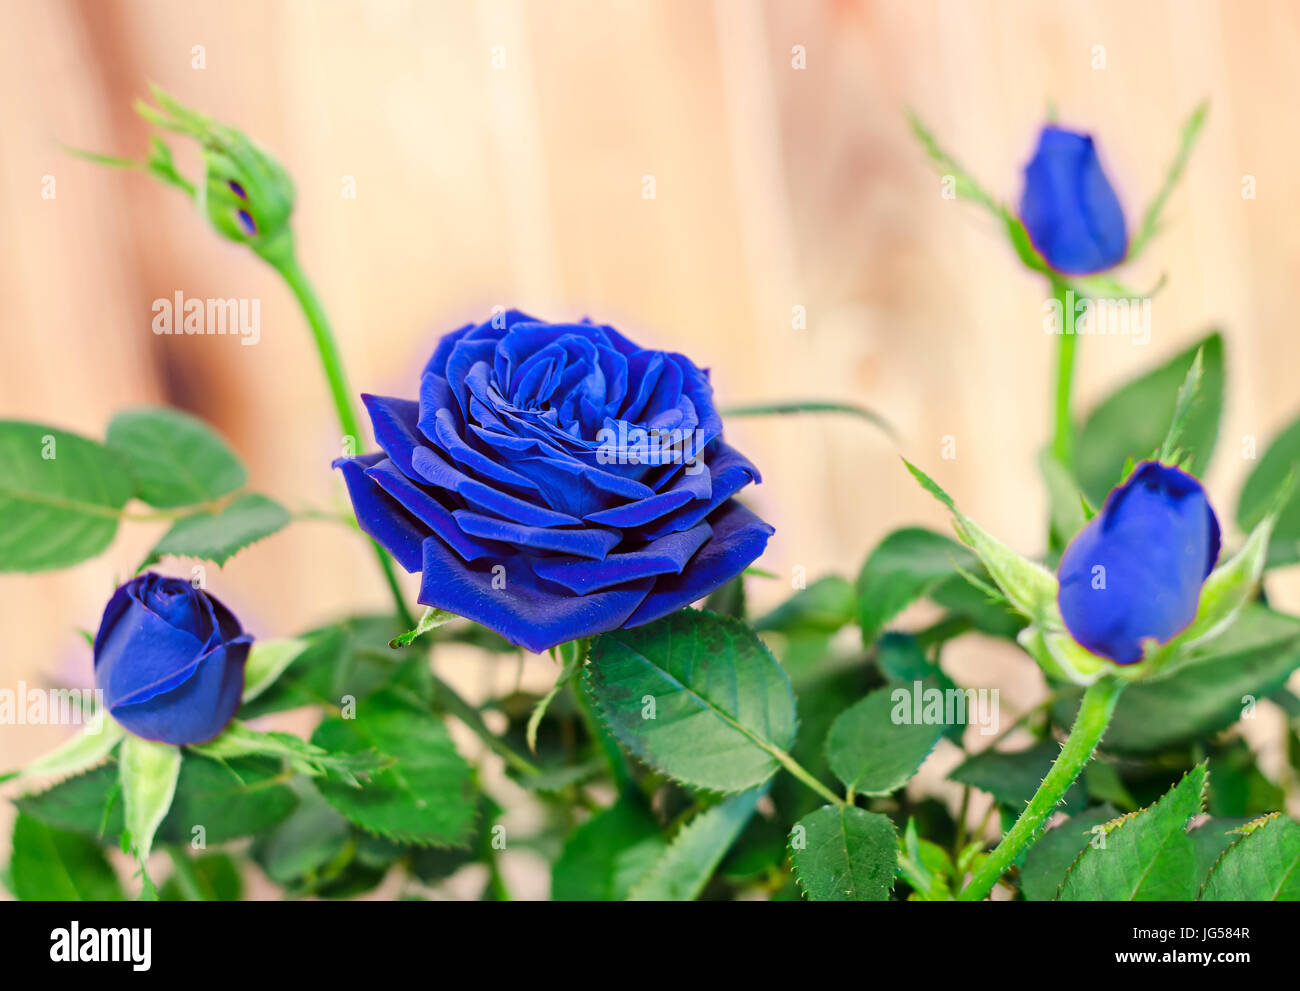 1c0482afd Blue roses flower bush with buds in a brown vase, flowerpot, green leaves,